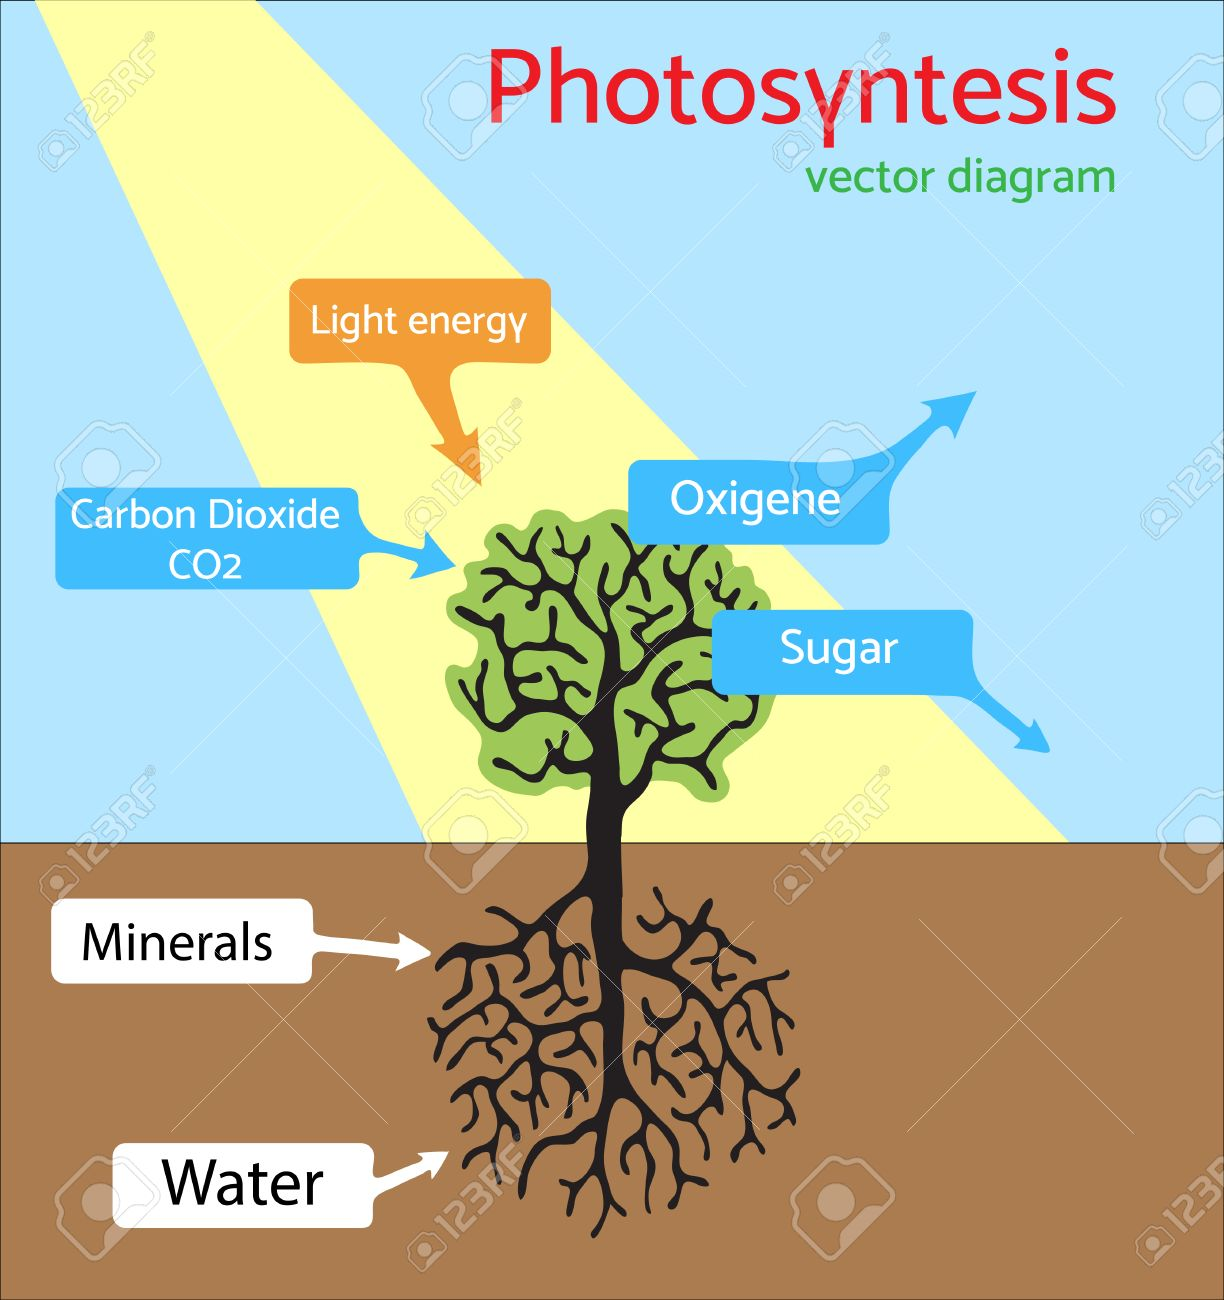 Photosynthesis Diagram. Schematic Illustration Of The Photosynthesis ...